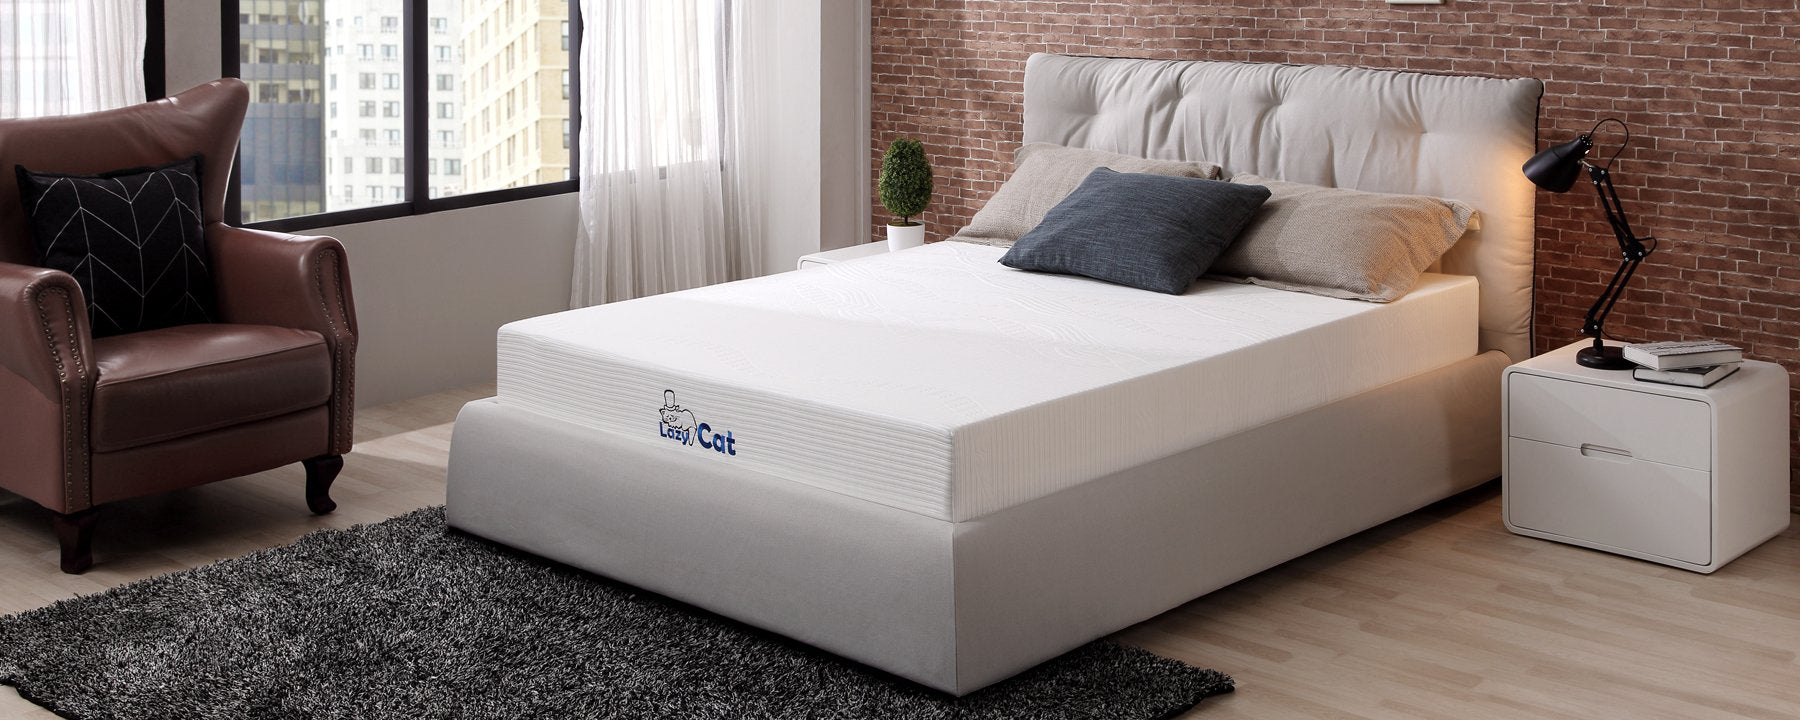 LazyCat 8 inch Memory Foam Mattress with Bonus Memory Foam Pillow